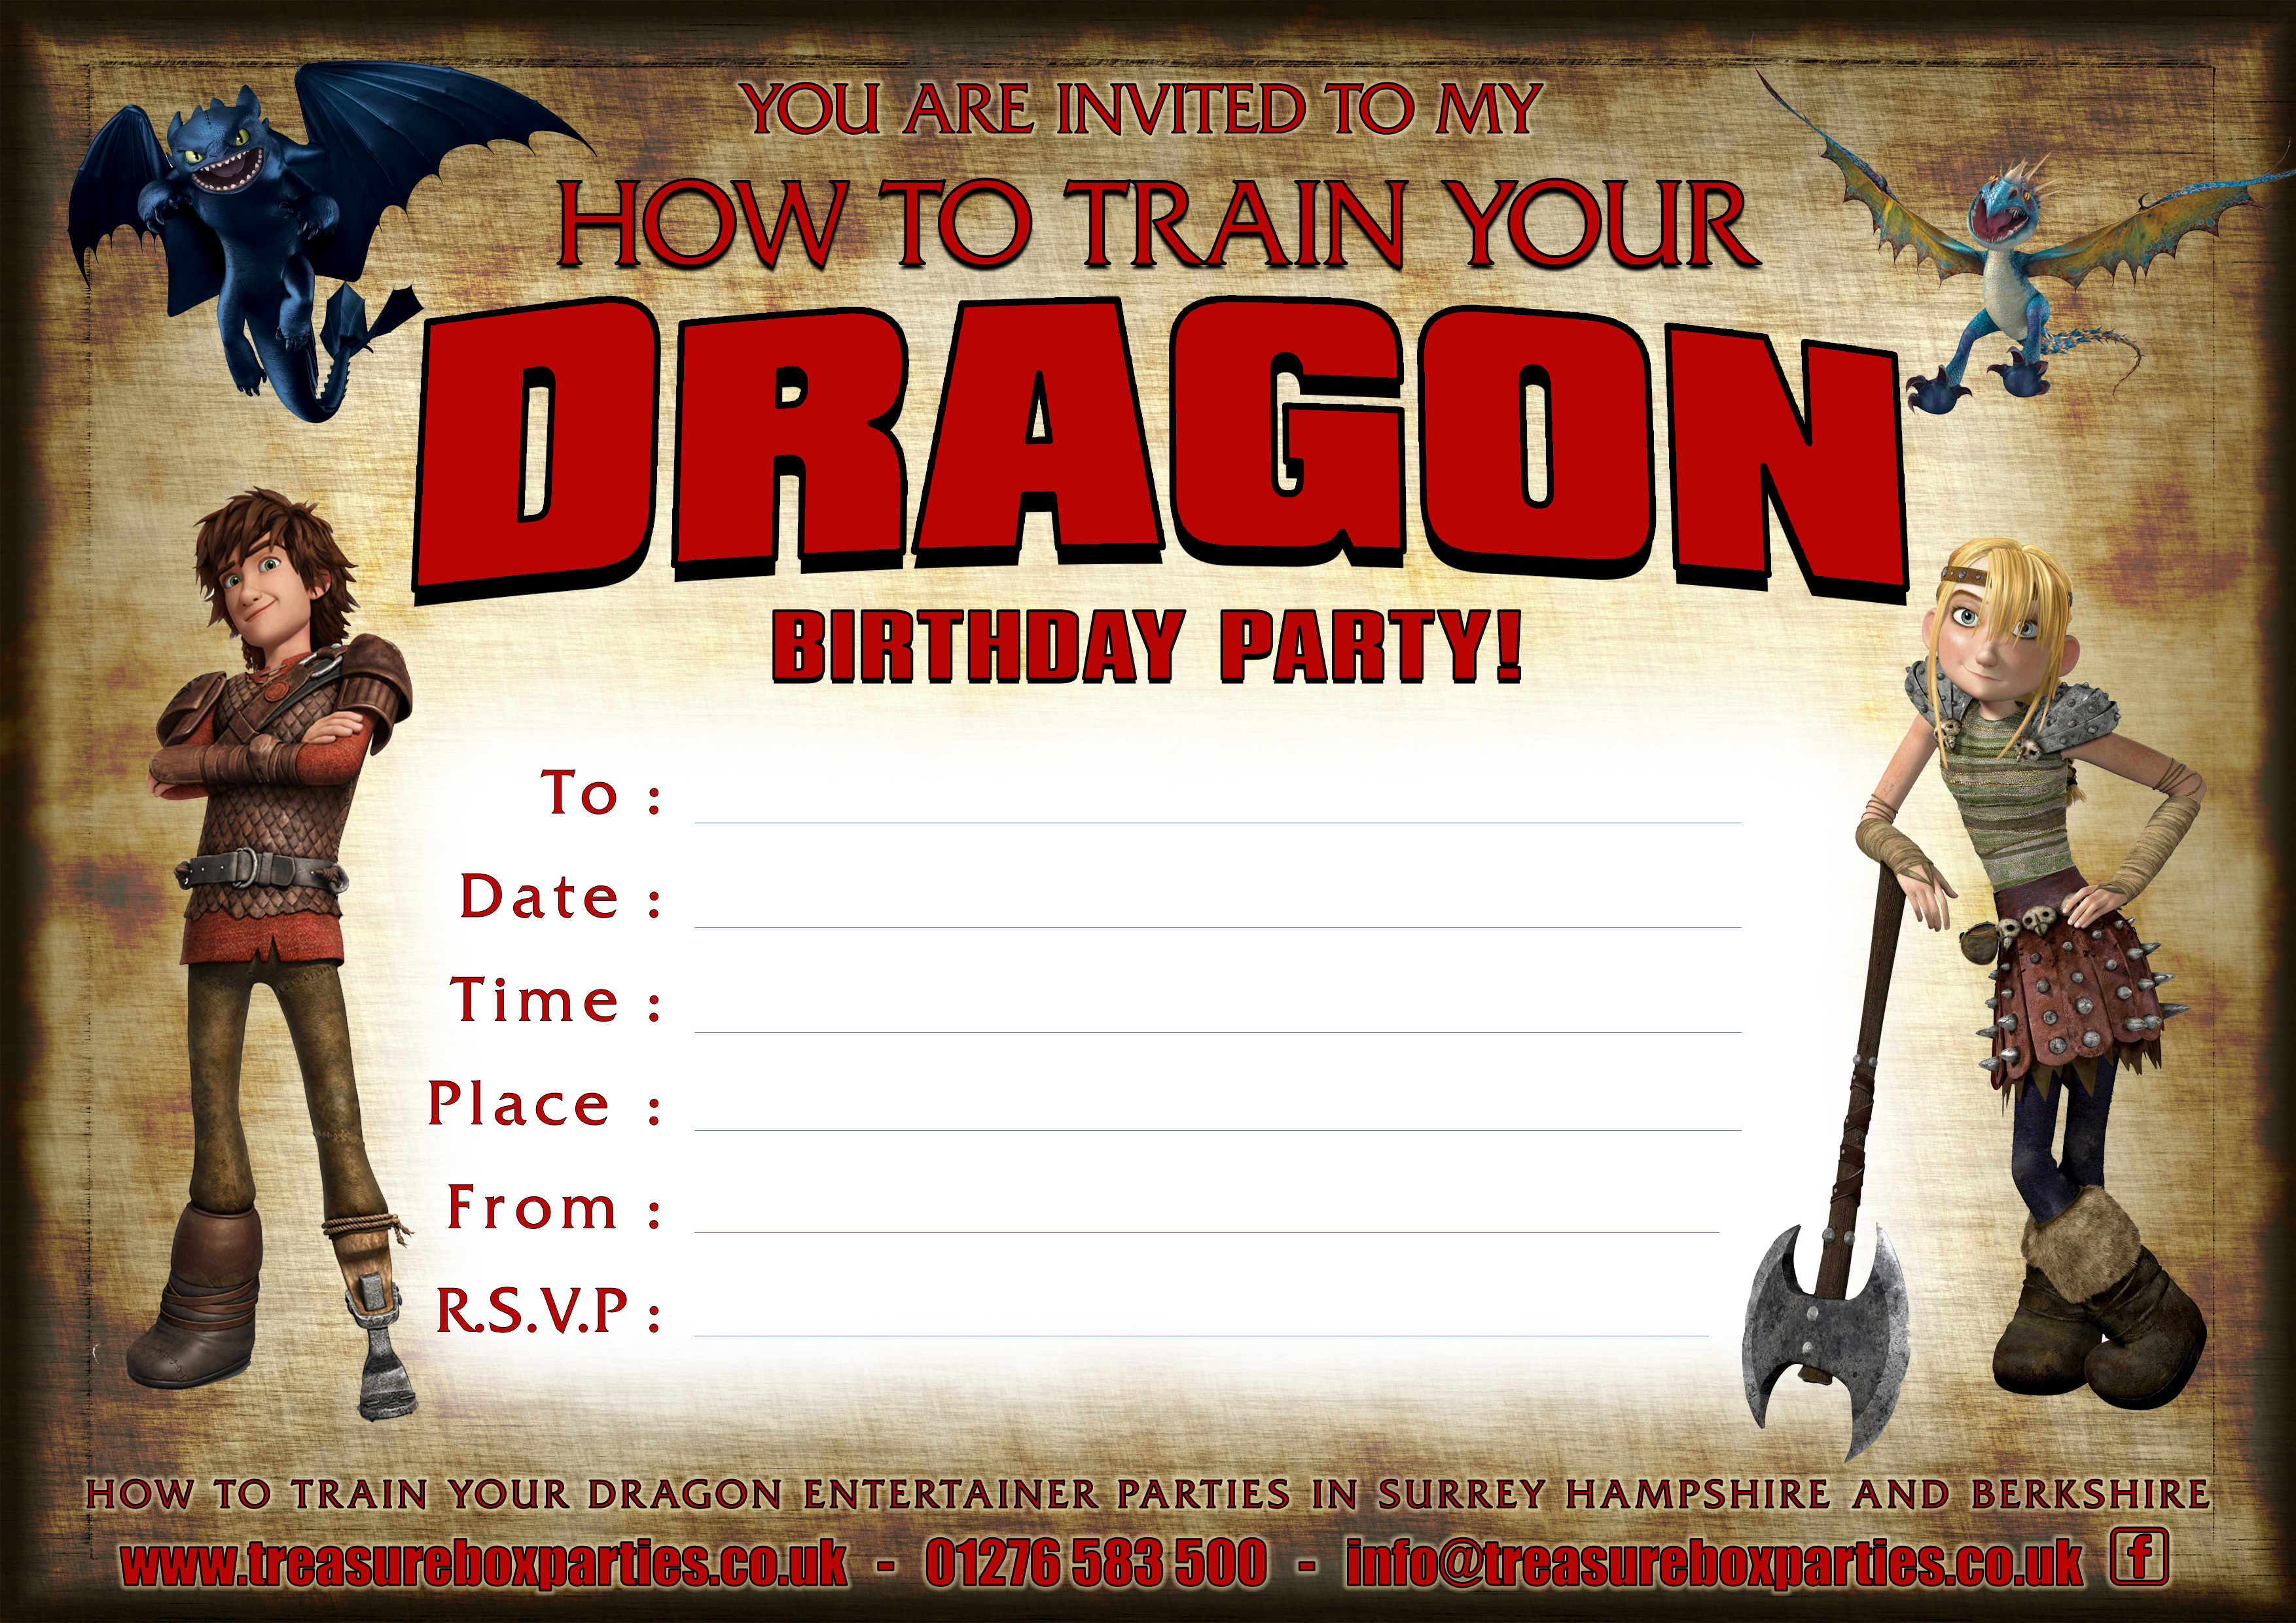 Free How To Train Your Dragon Downloads Childrens Entertainer Parties Surrey Berkshire Hampshire Treasure Box Parties Supplies Kids Party Games Ideas